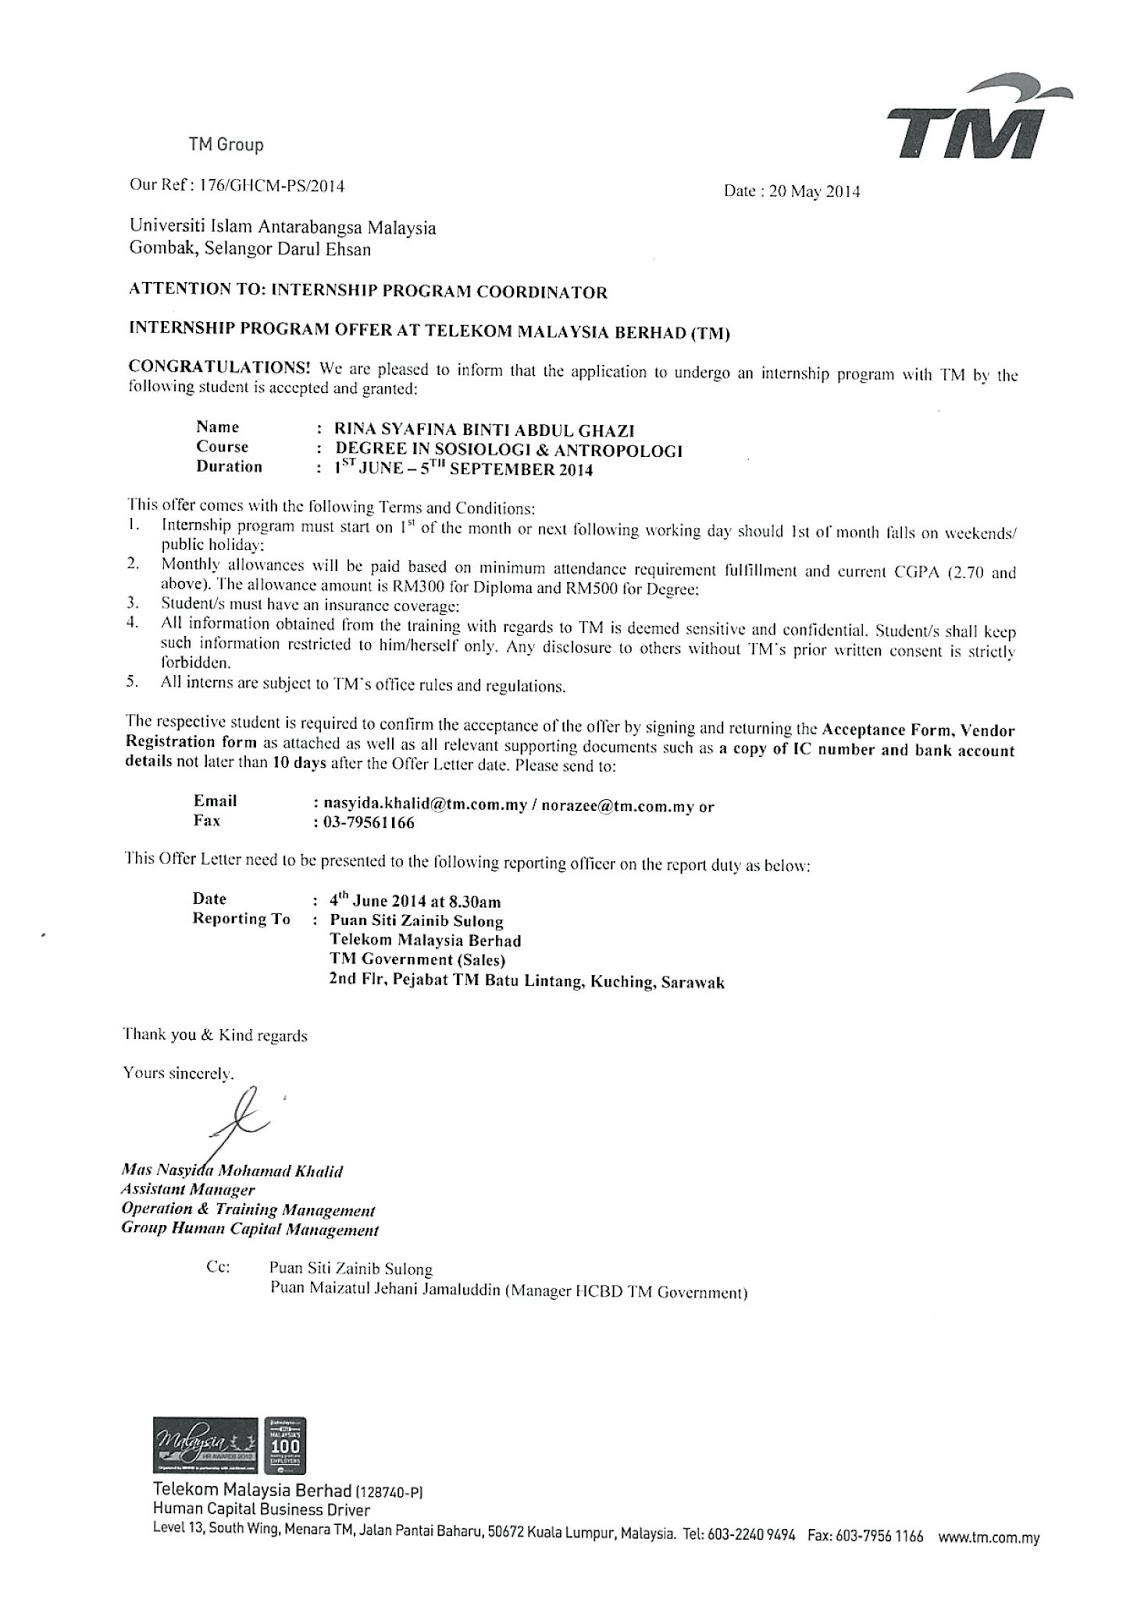 internship acceptance letter format from company to students 2019 , internship acceptance letter format from company to students, internship acceptance letter format from company 2020, internship letter format from company to students,